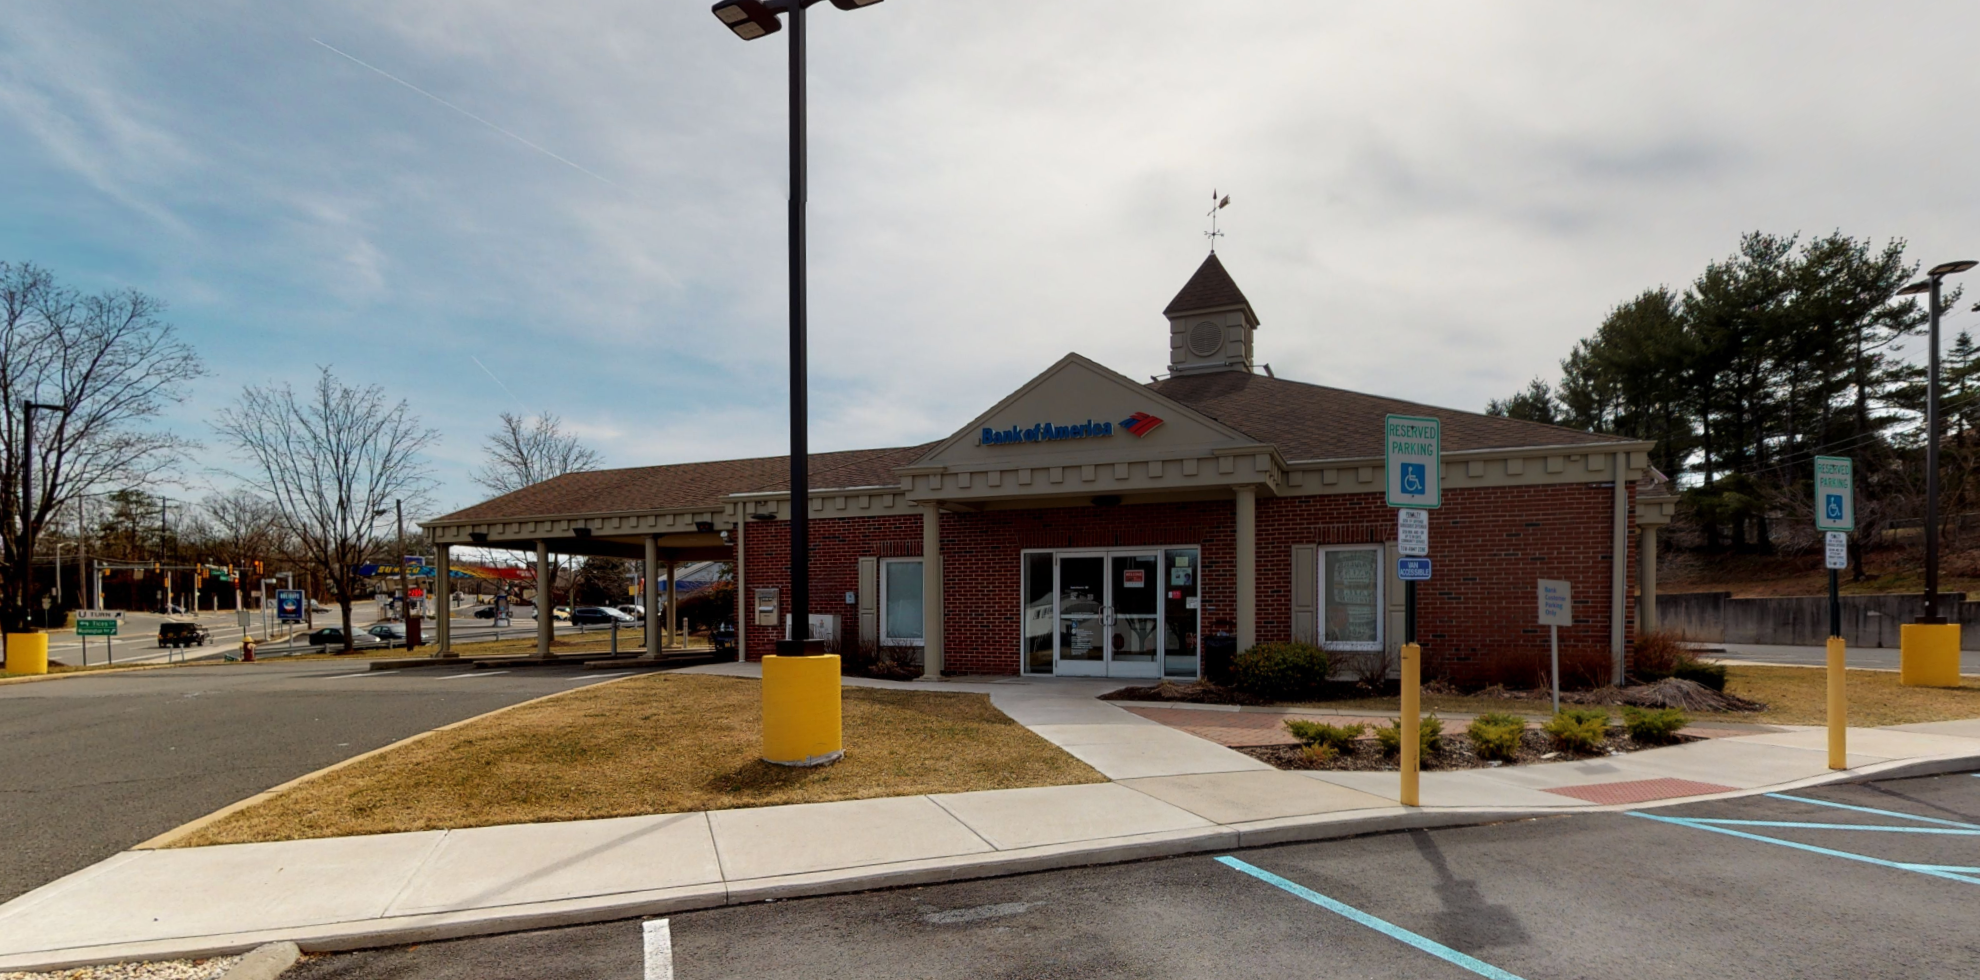 Bank of America financial center with drive-thru ATM | 100 Ryders Ln, Milltown, NJ 08850